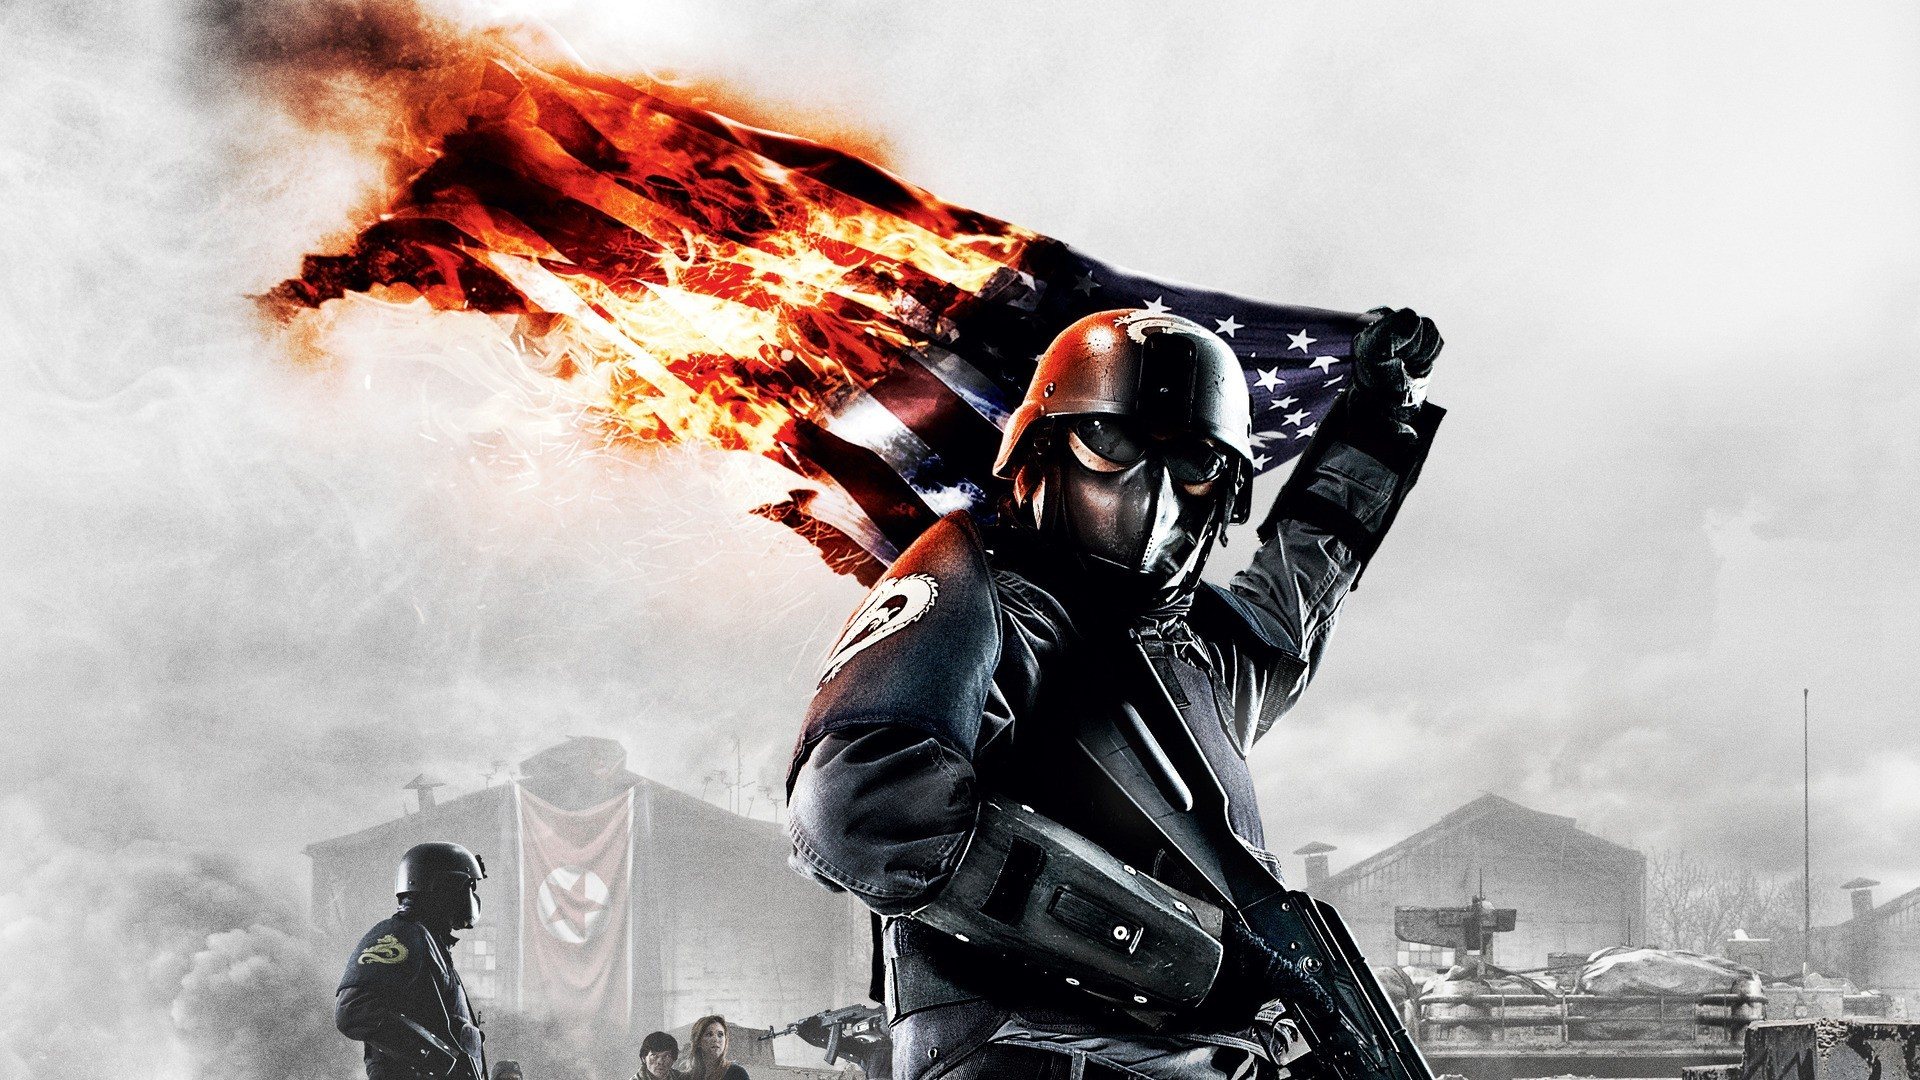 soldiers video games fire HD Wallpaper